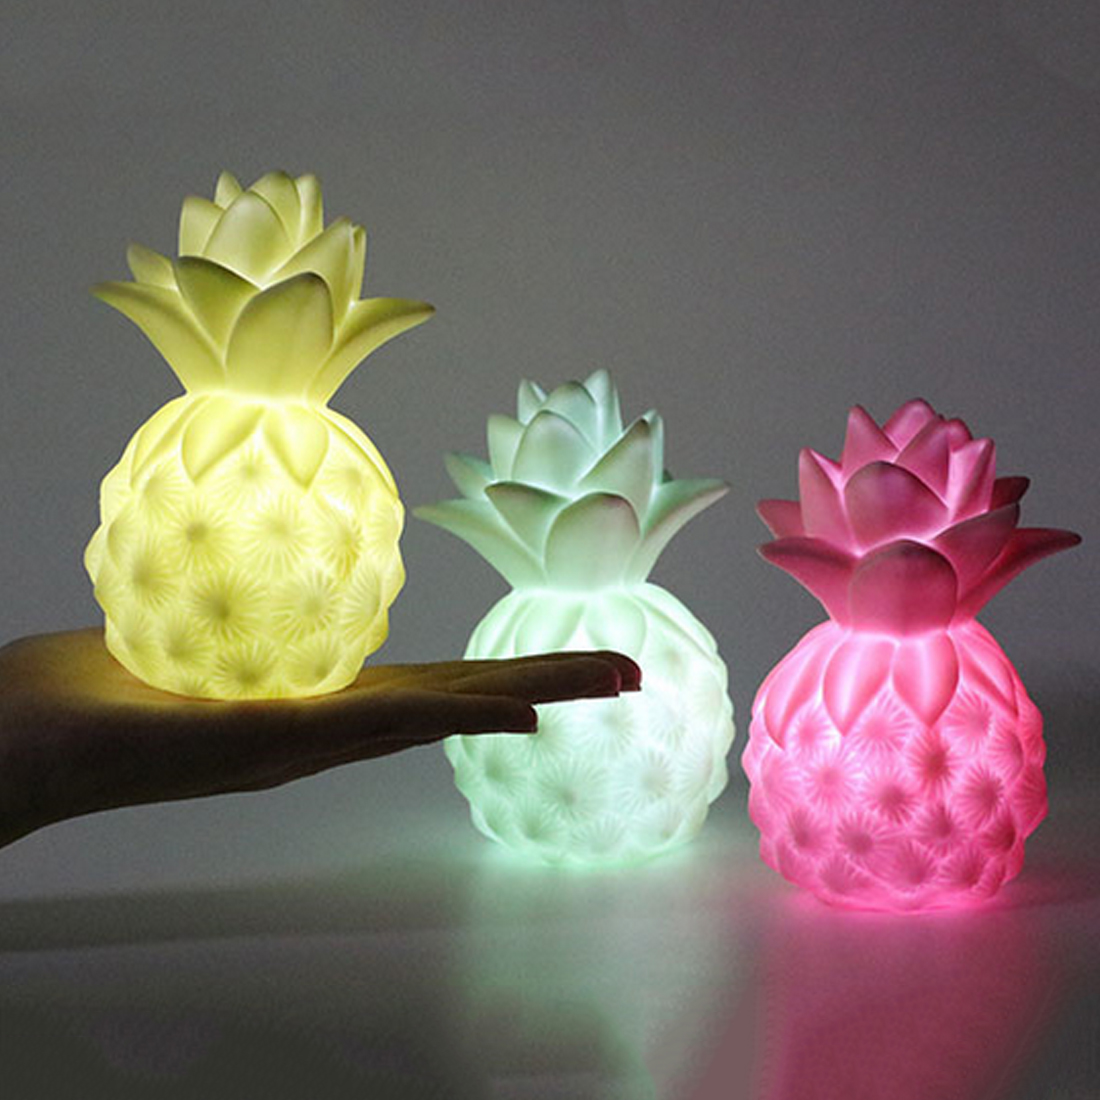 Creative Night Lights Pineapple Led Lamp Soft Silicone Toy Gift Light High Power Bright Desk Table Home Decor Night Lamp